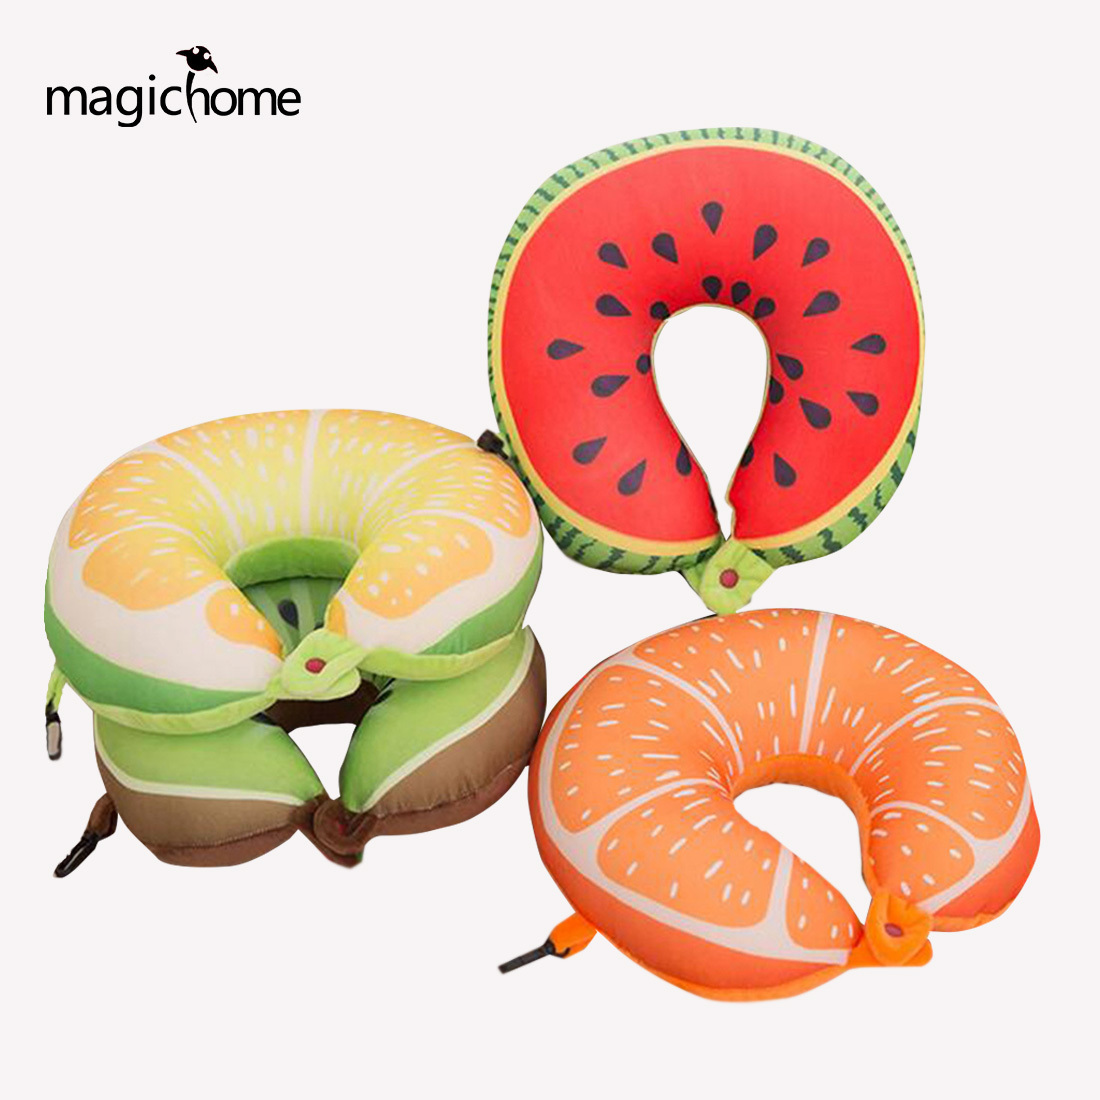 Hot Sale Fruit U Shaped Travel Pillows Neck Protection Pillow Soft Nanoparticles Massage Cute Cushion Home Textile Decor Garden Pots & Planters